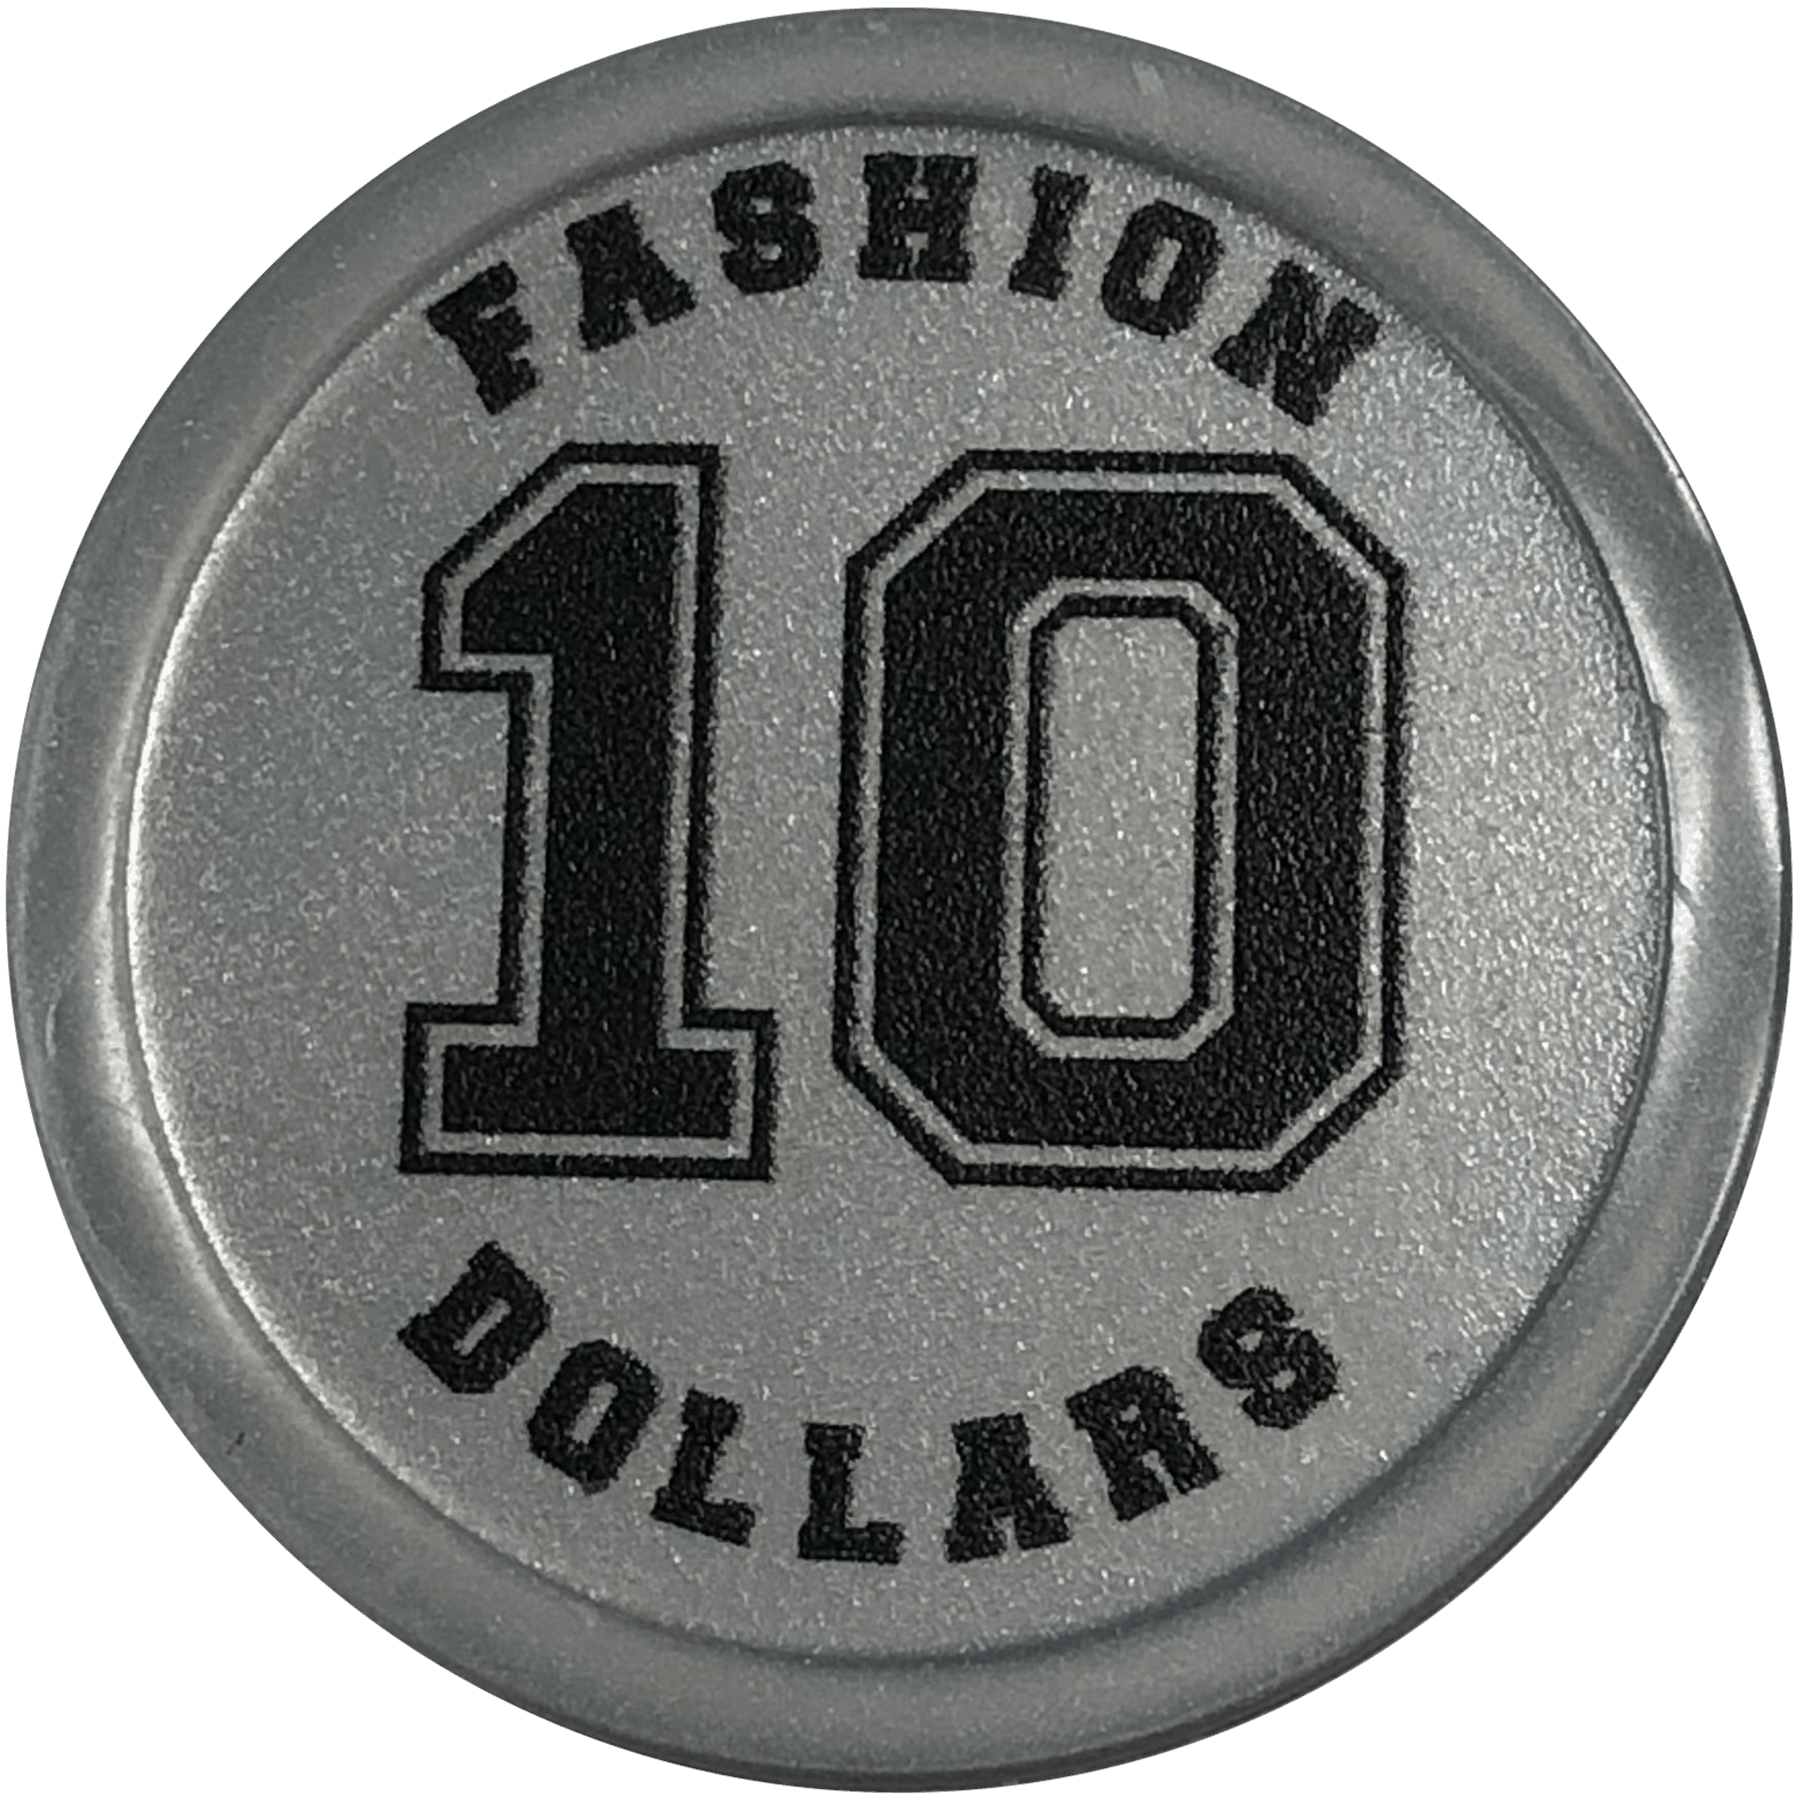 Personalised custom tokens, embossed printed, occasion event